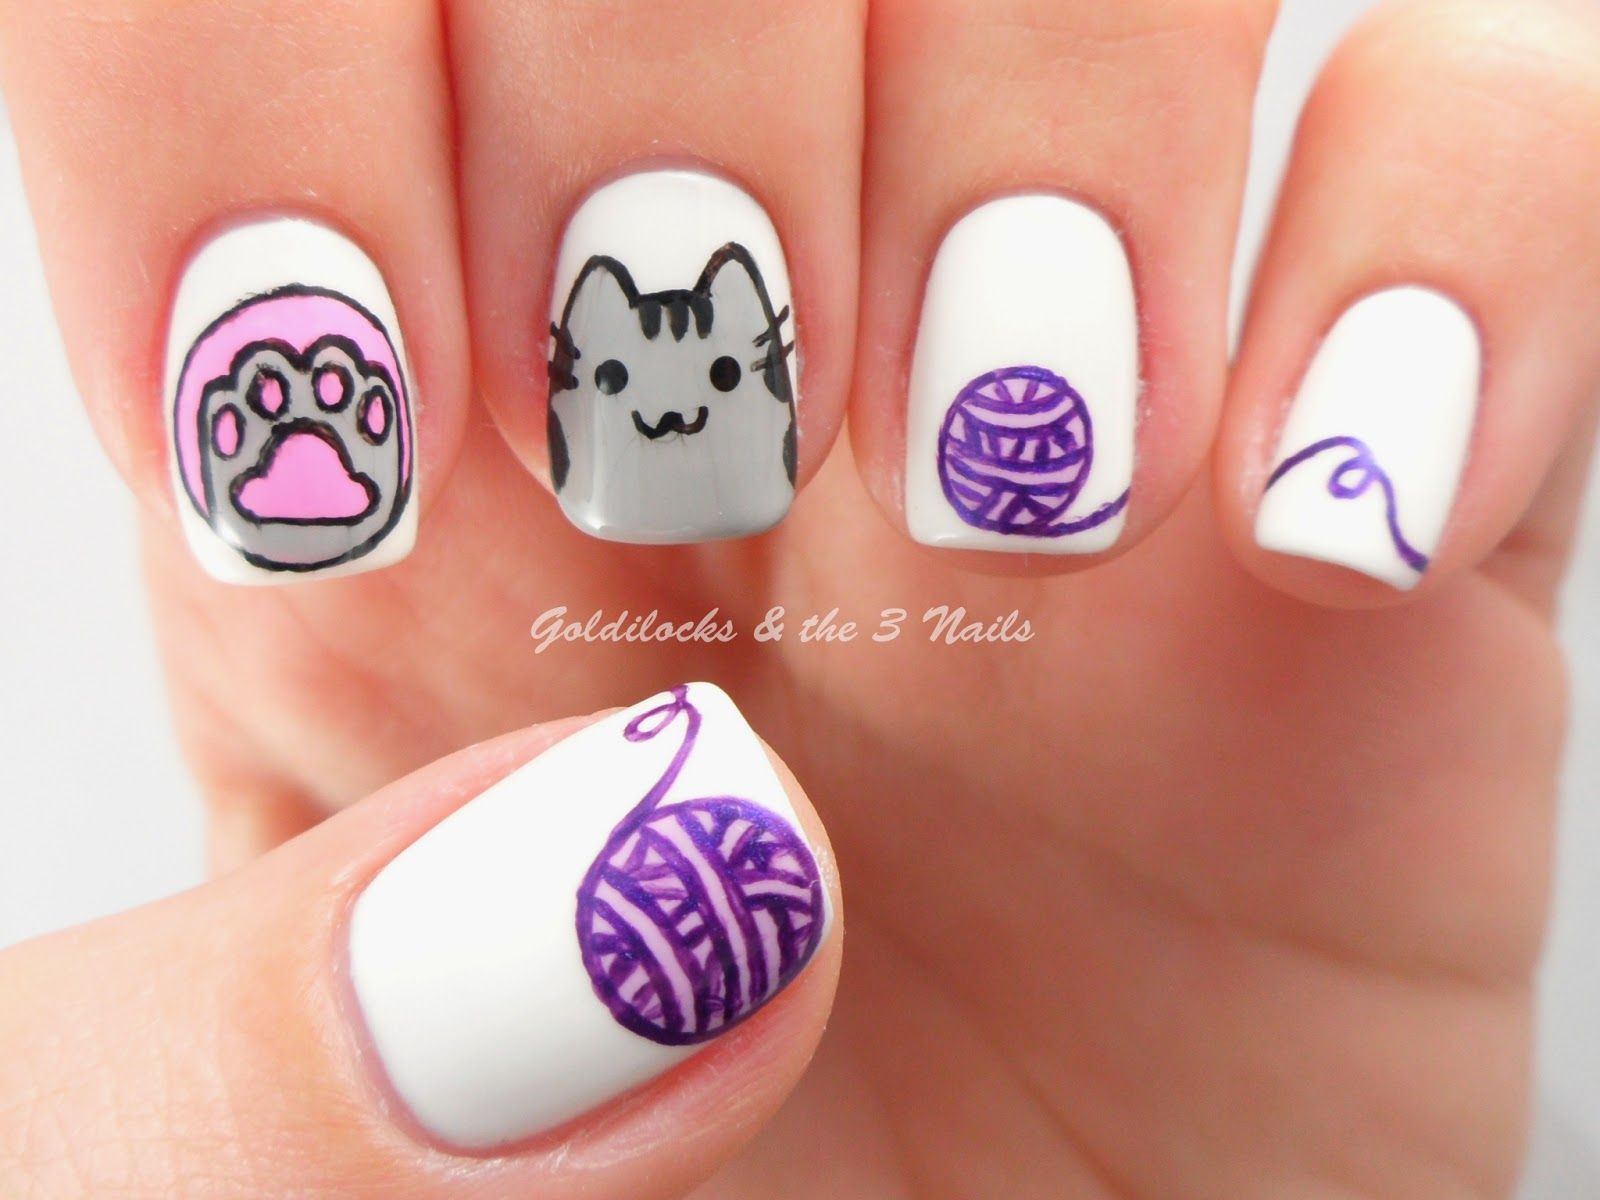 Goldilocks The Three Nails Pusheen Cat Nail Art